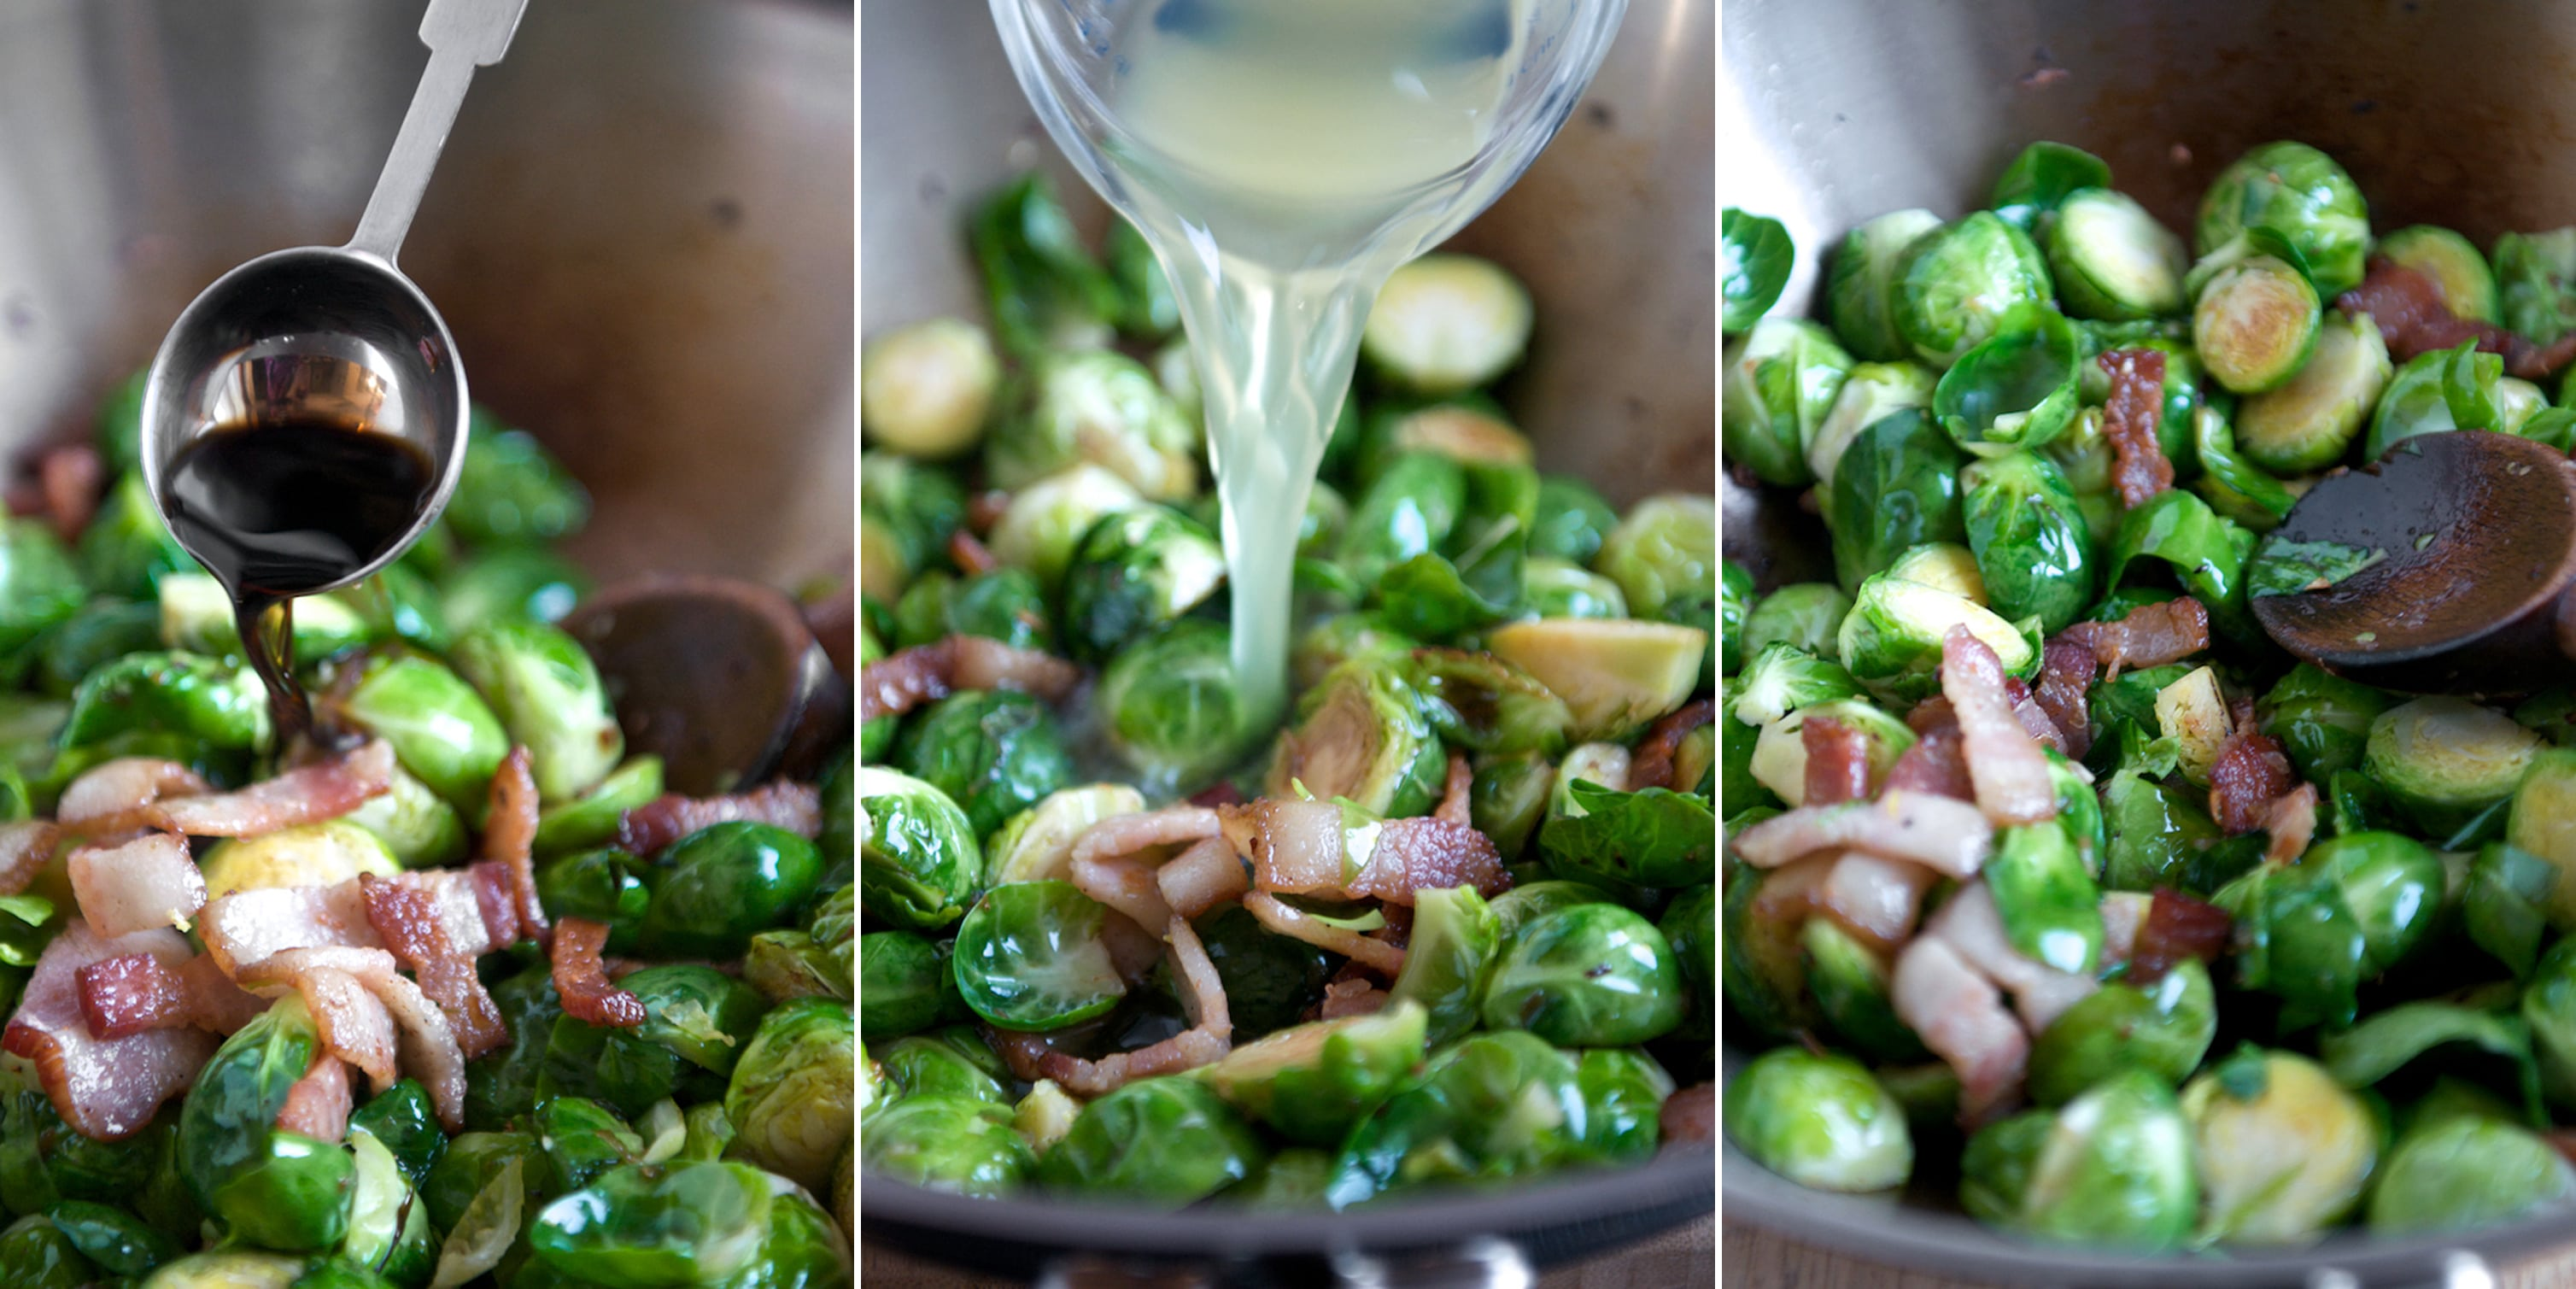 braised brussels sprouts recipe in pan